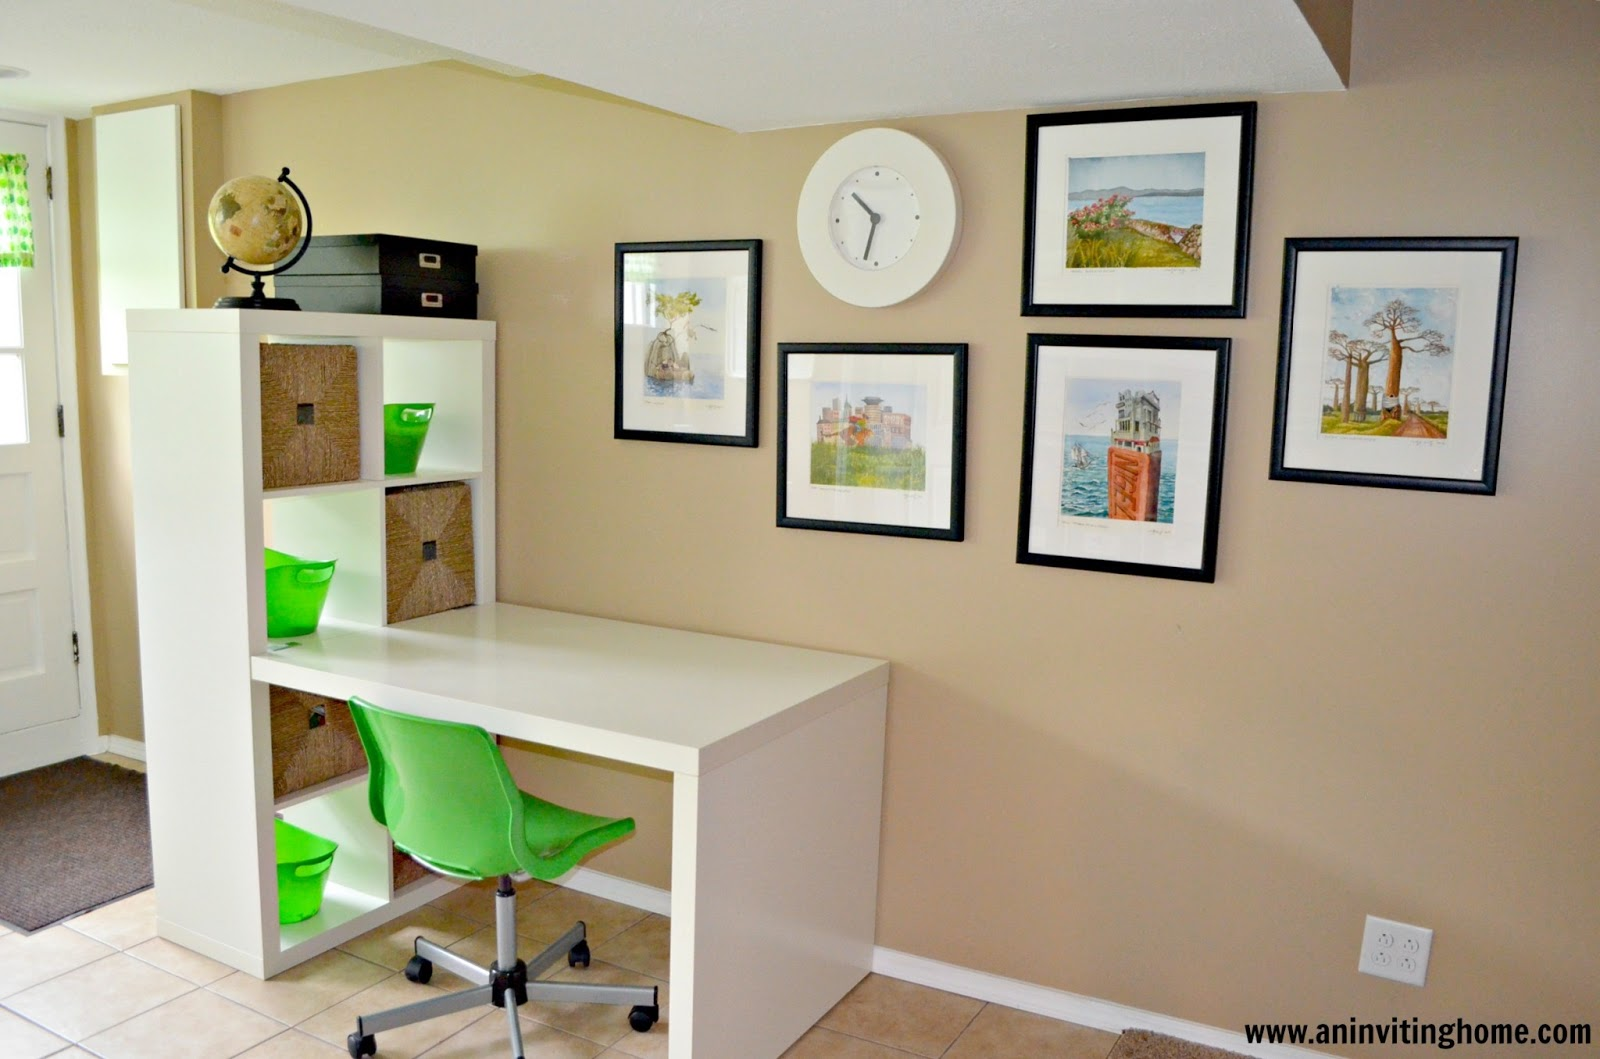 An inviting home 6 tips to organizing a kid 39 s craft space - Desks for small spaces for kids gallery ...